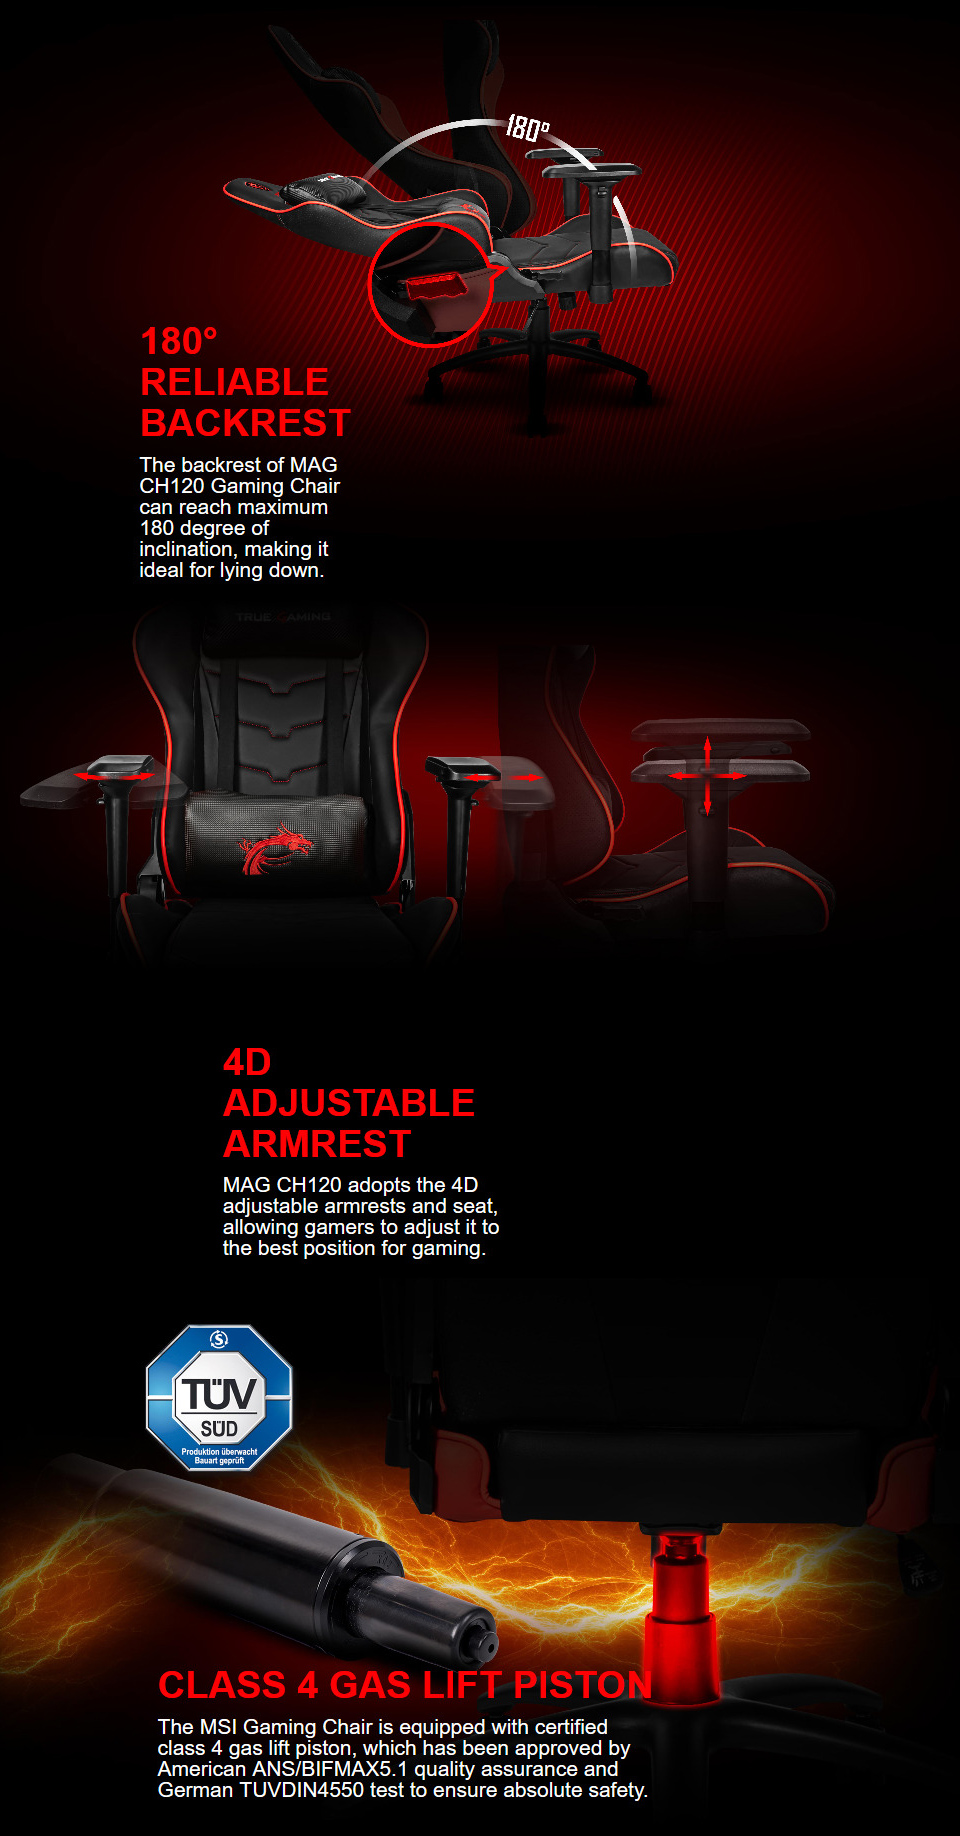 MSI MAG-CH120X Gaming Chair features 2